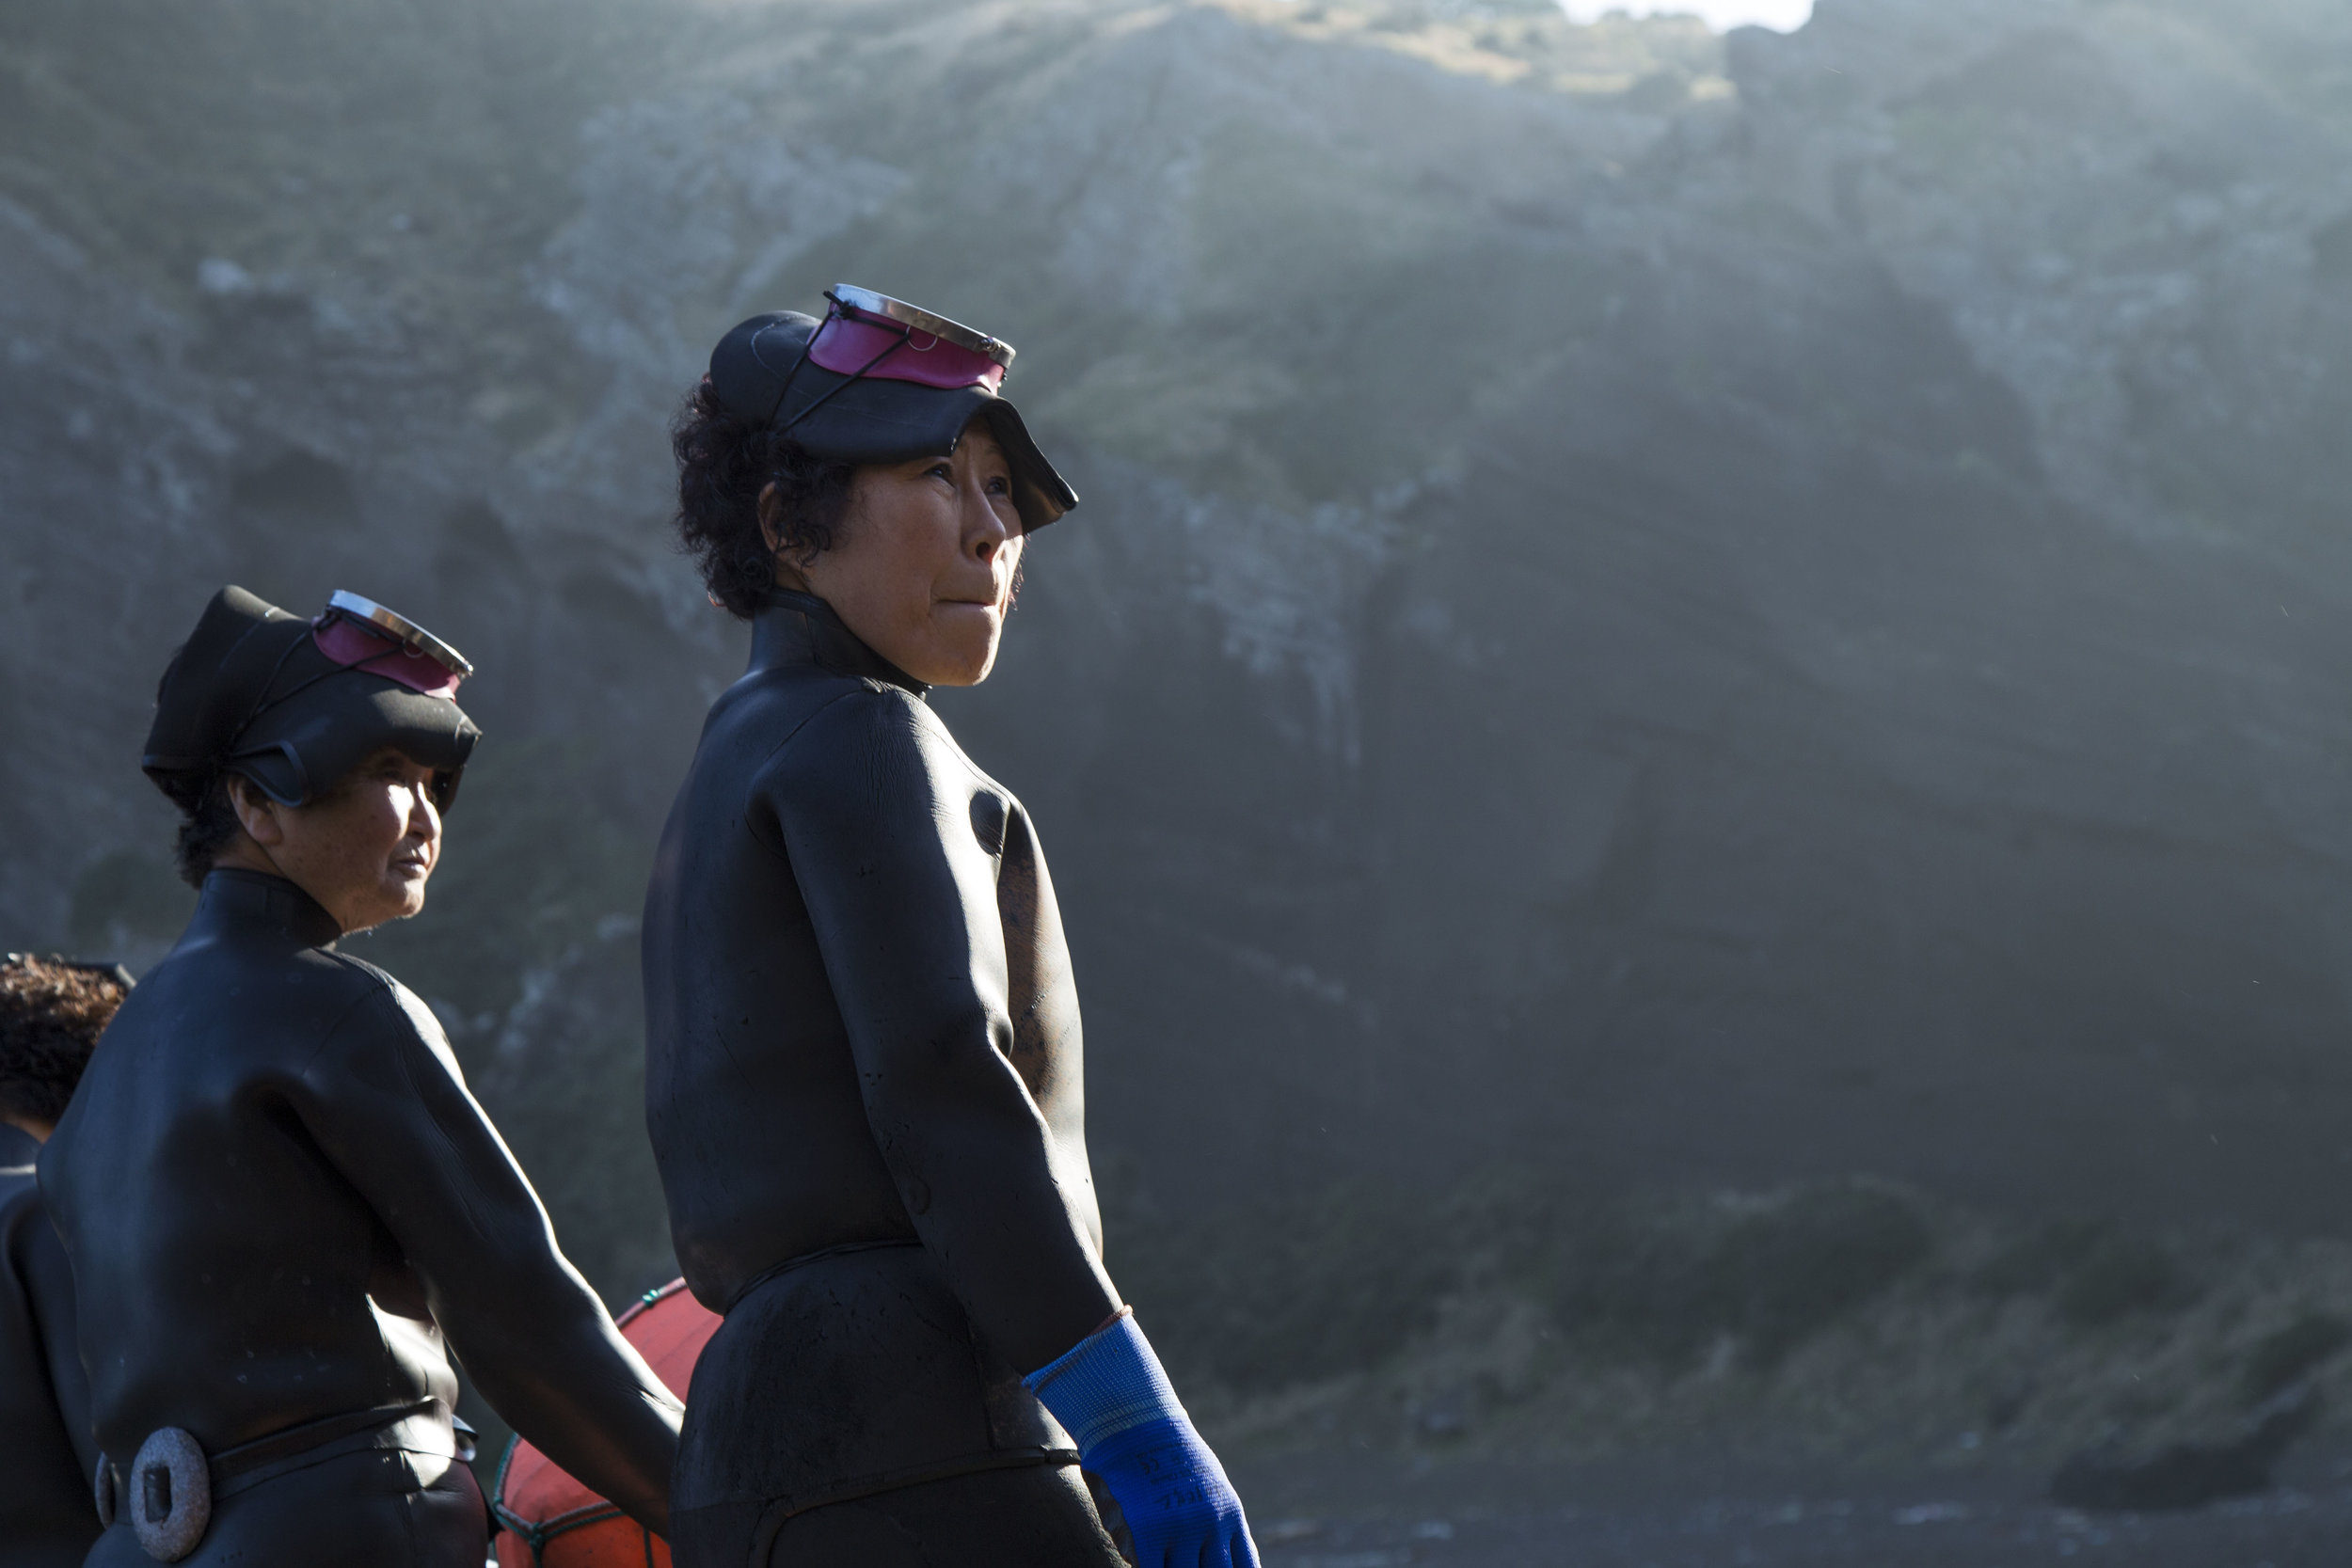 Women divers of Jeju Island, called Haenyeo, prepare for yet another dive into the ocean to collect shellfish from the rocks and seafloor. Using a led weight, they sink deep enough to collect the fish, then pull themselves up along a cord attached to a flotation device above water. Most haenyeo are now over the age of 50, as industrialization and increasing work and educational opportunities for women draw them to other professions. These women represent what may be the last generation of haenyeo.